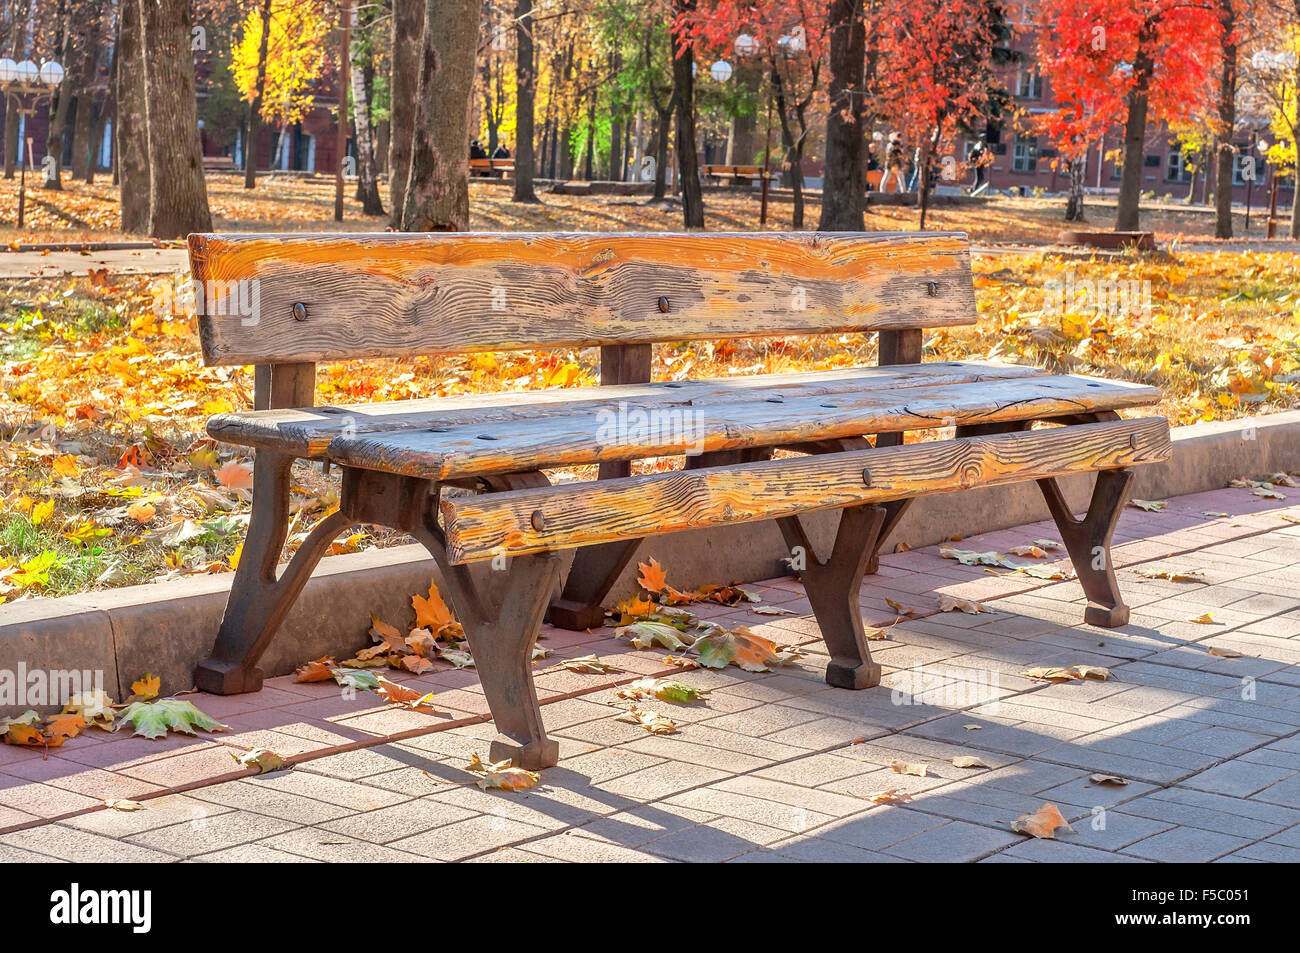 Lonely old bench in autumn city park on a sunny day - Stock Image